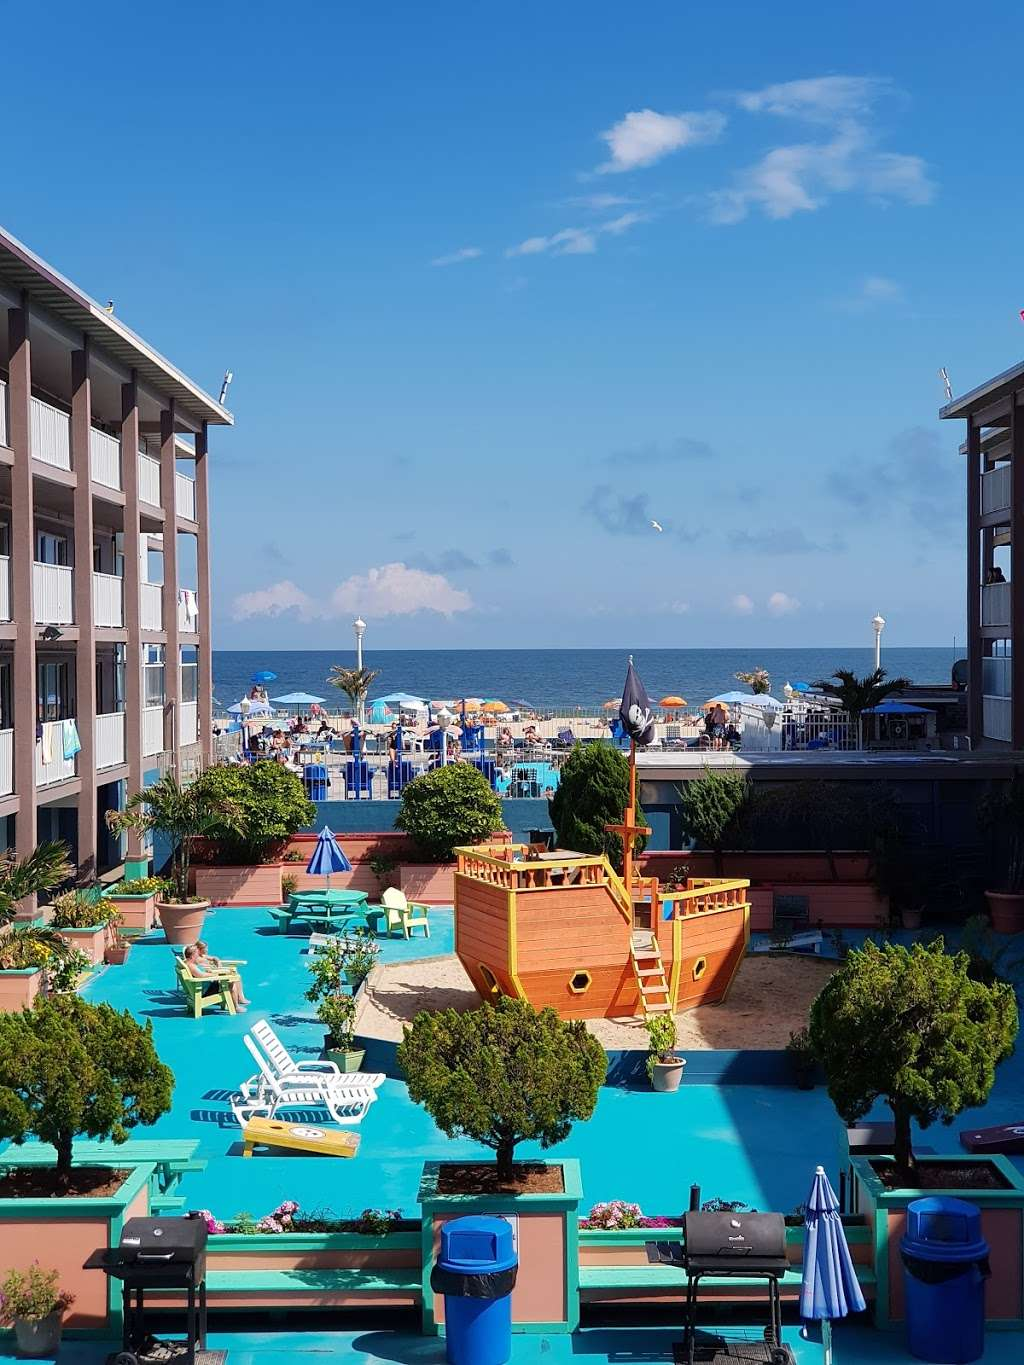 Flagship Oceanfront Hotel - lodging  | Photo 5 of 10 | Address: 2600 N Baltimore Ave, Ocean City, MD 21842, USA | Phone: (800) 837-3585